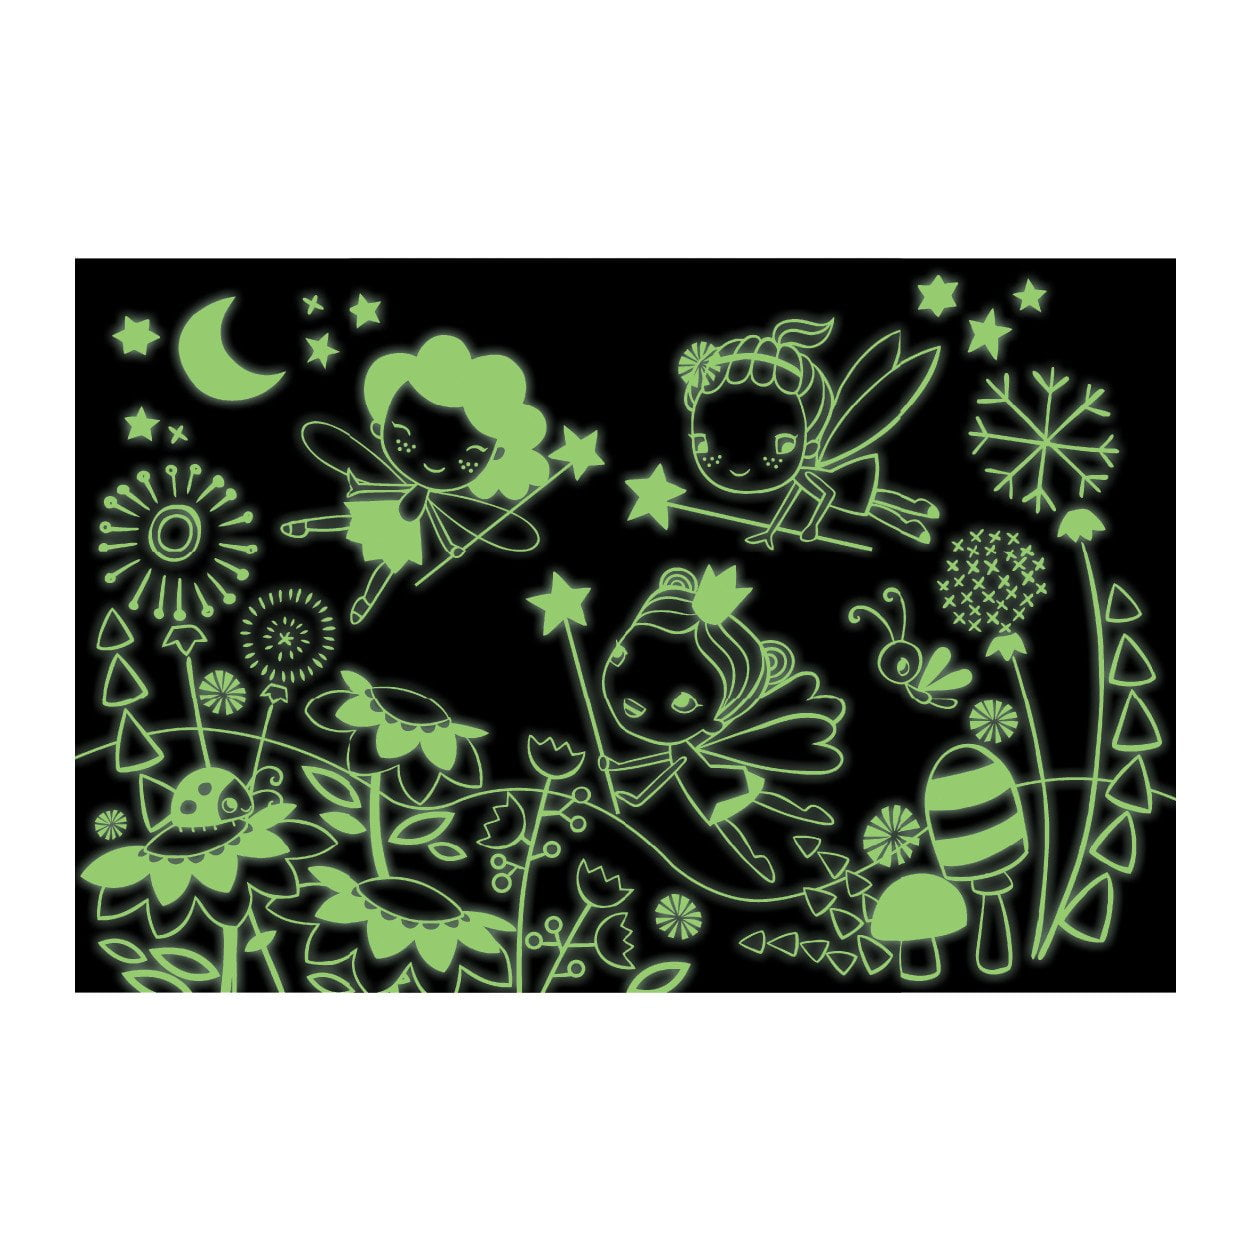 Fairies Glow in the Dark 100 Piece Puzzle - Mudpuppy